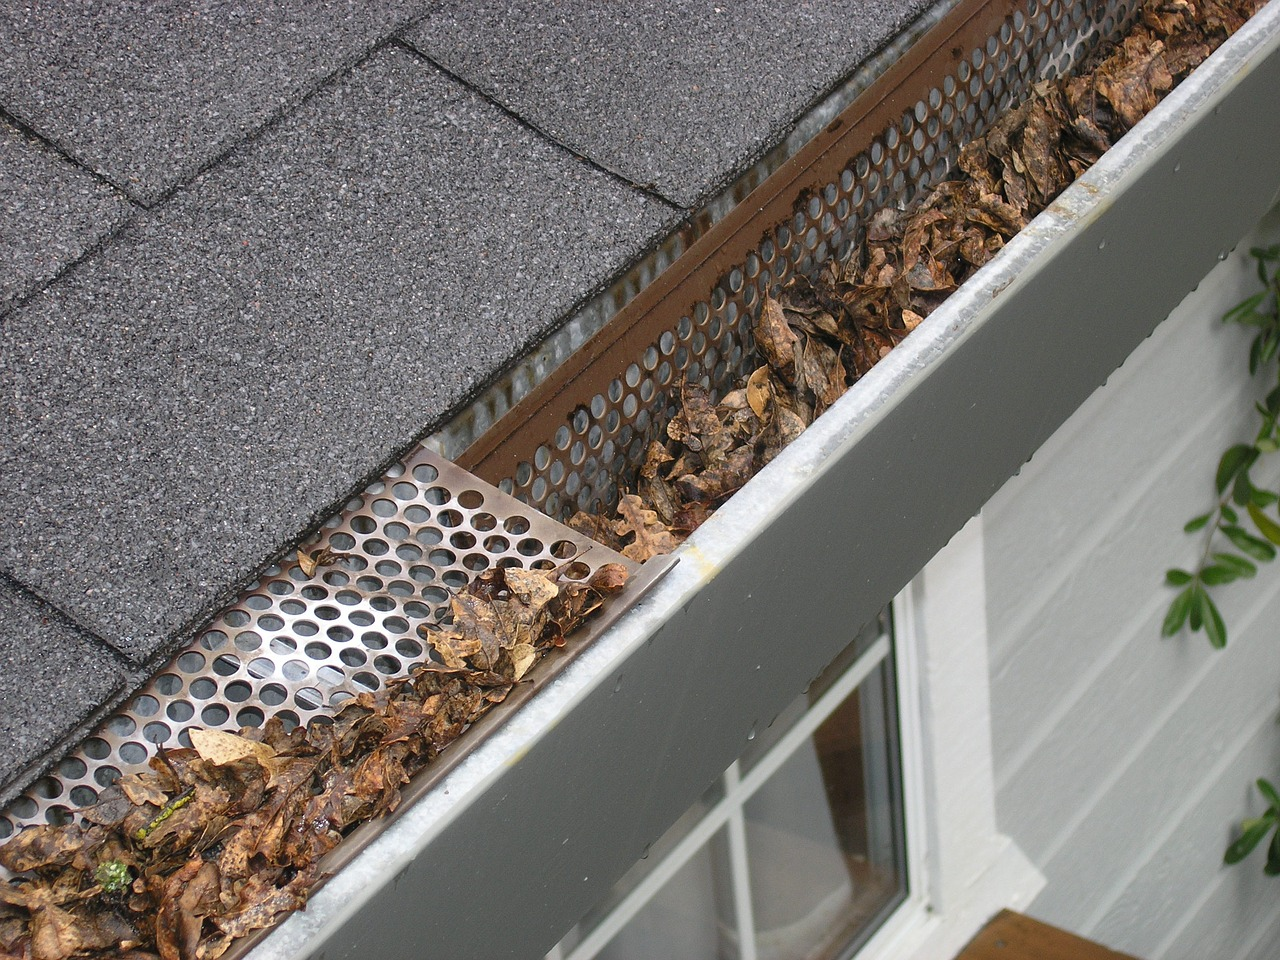 Steps And Precautions for Installing Gutter Guards on Metal Roofs